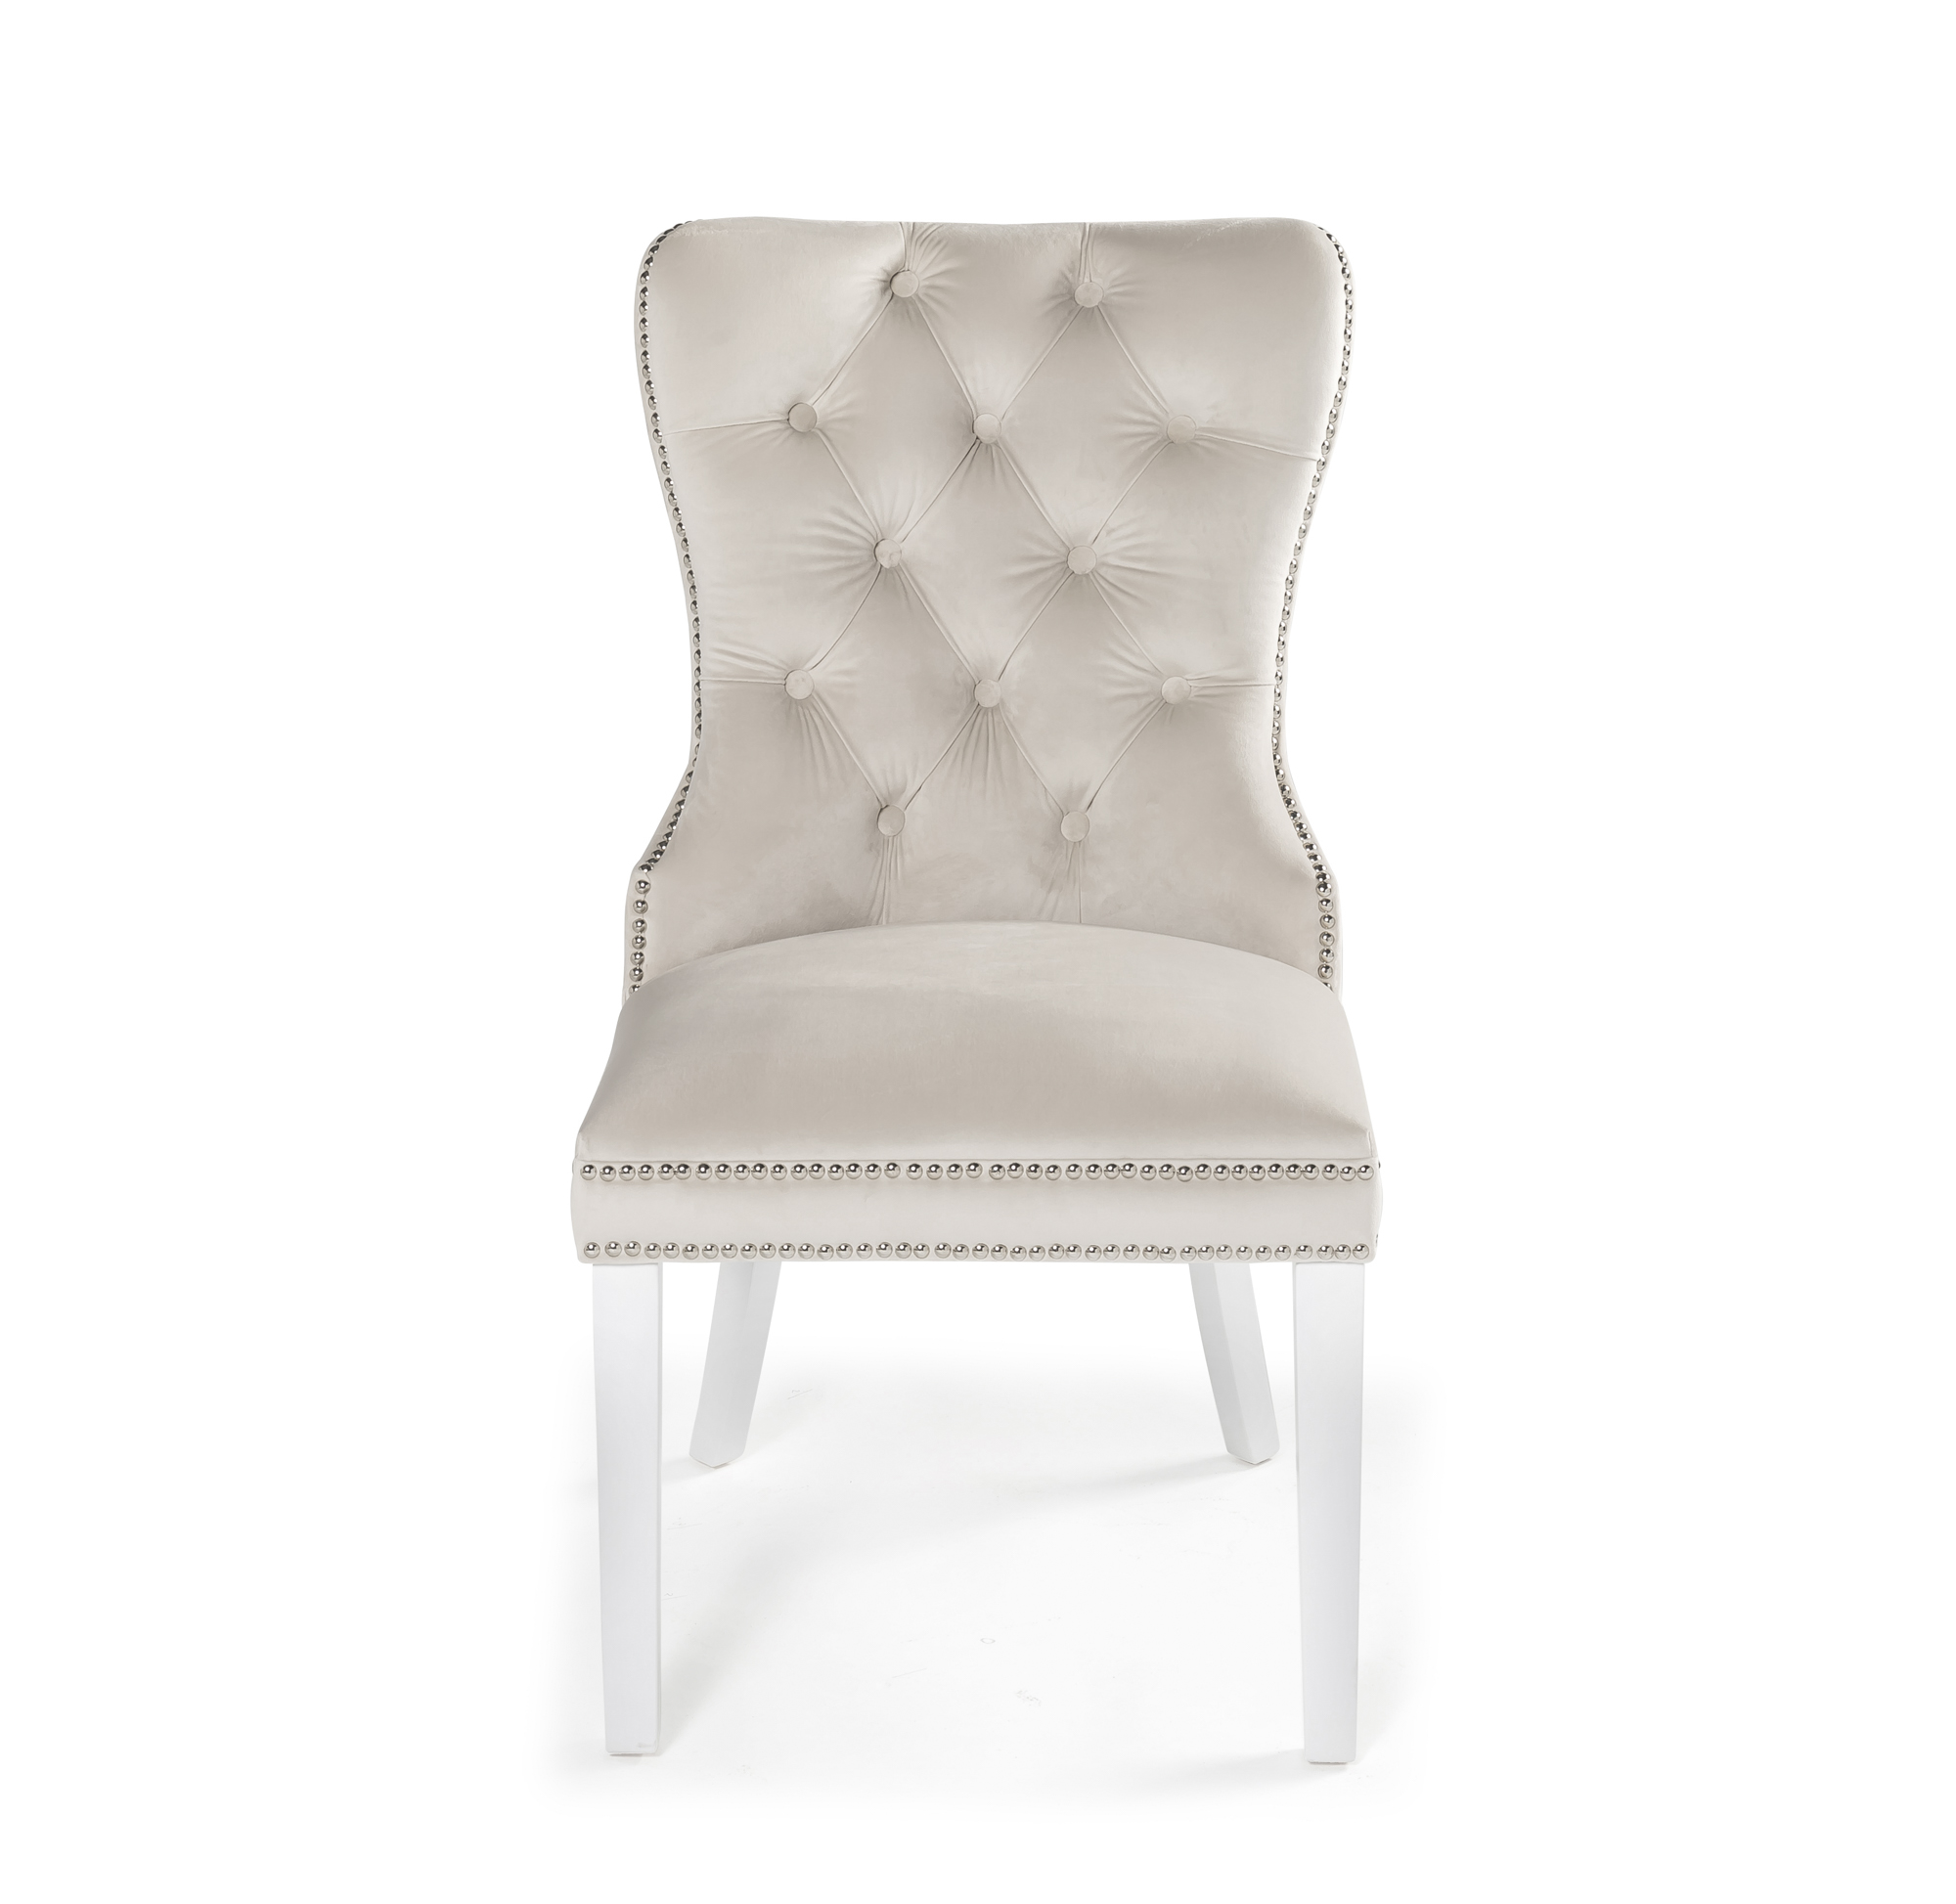 Hale Cream Brushed Velvet Studded & Hoop Dining Chair with White Painted Legs